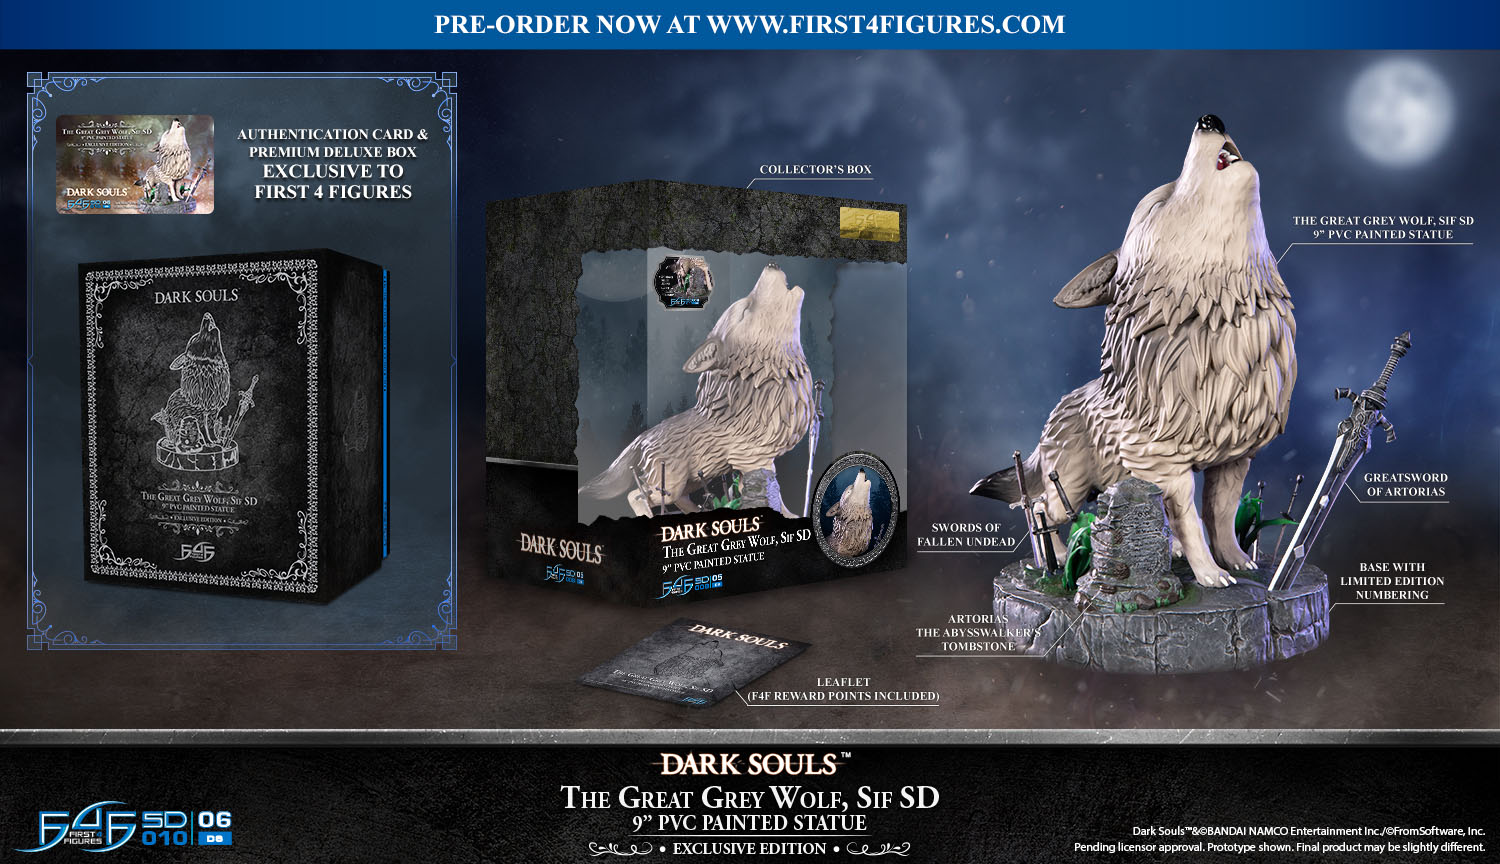 The Great Grey Wolf, Sif SD (Exclusive Edition)